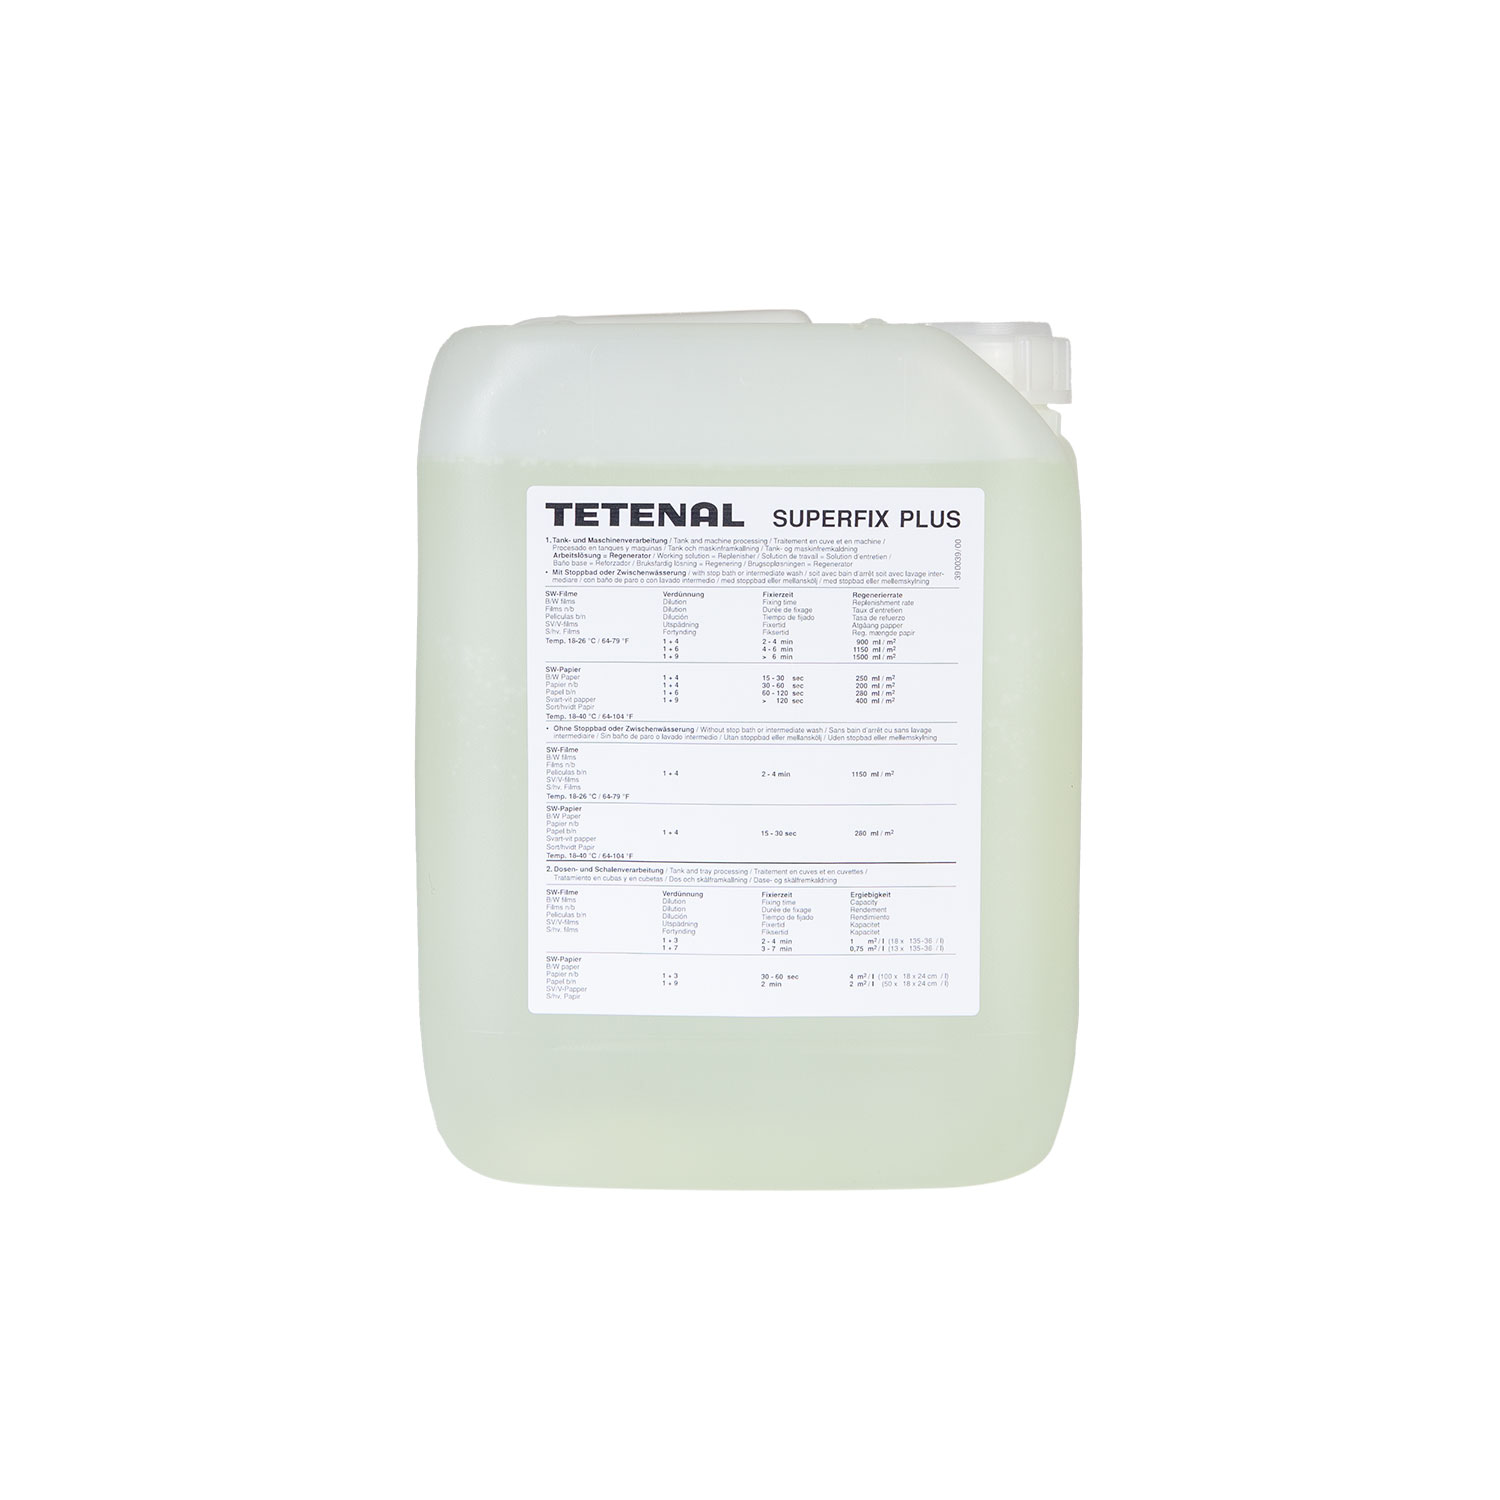 TETENAL Superfix Plus 5 Liter